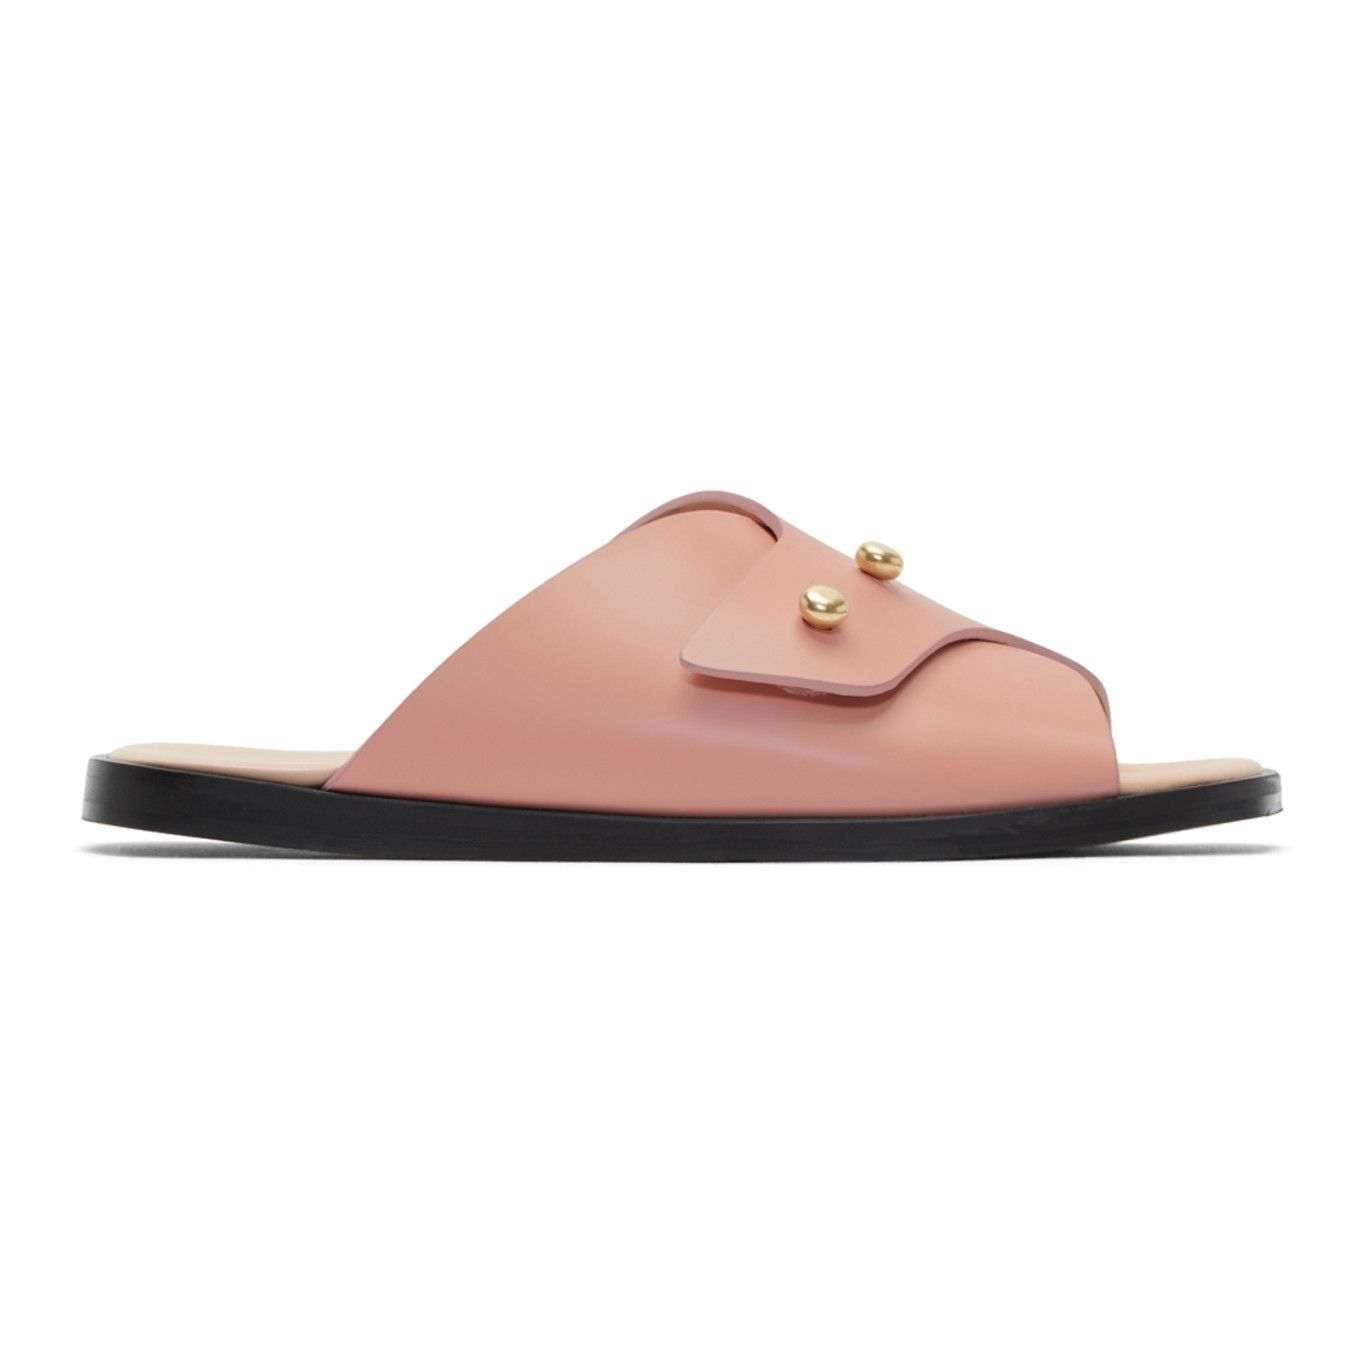 Acne Studios Pink Jilly Sandals